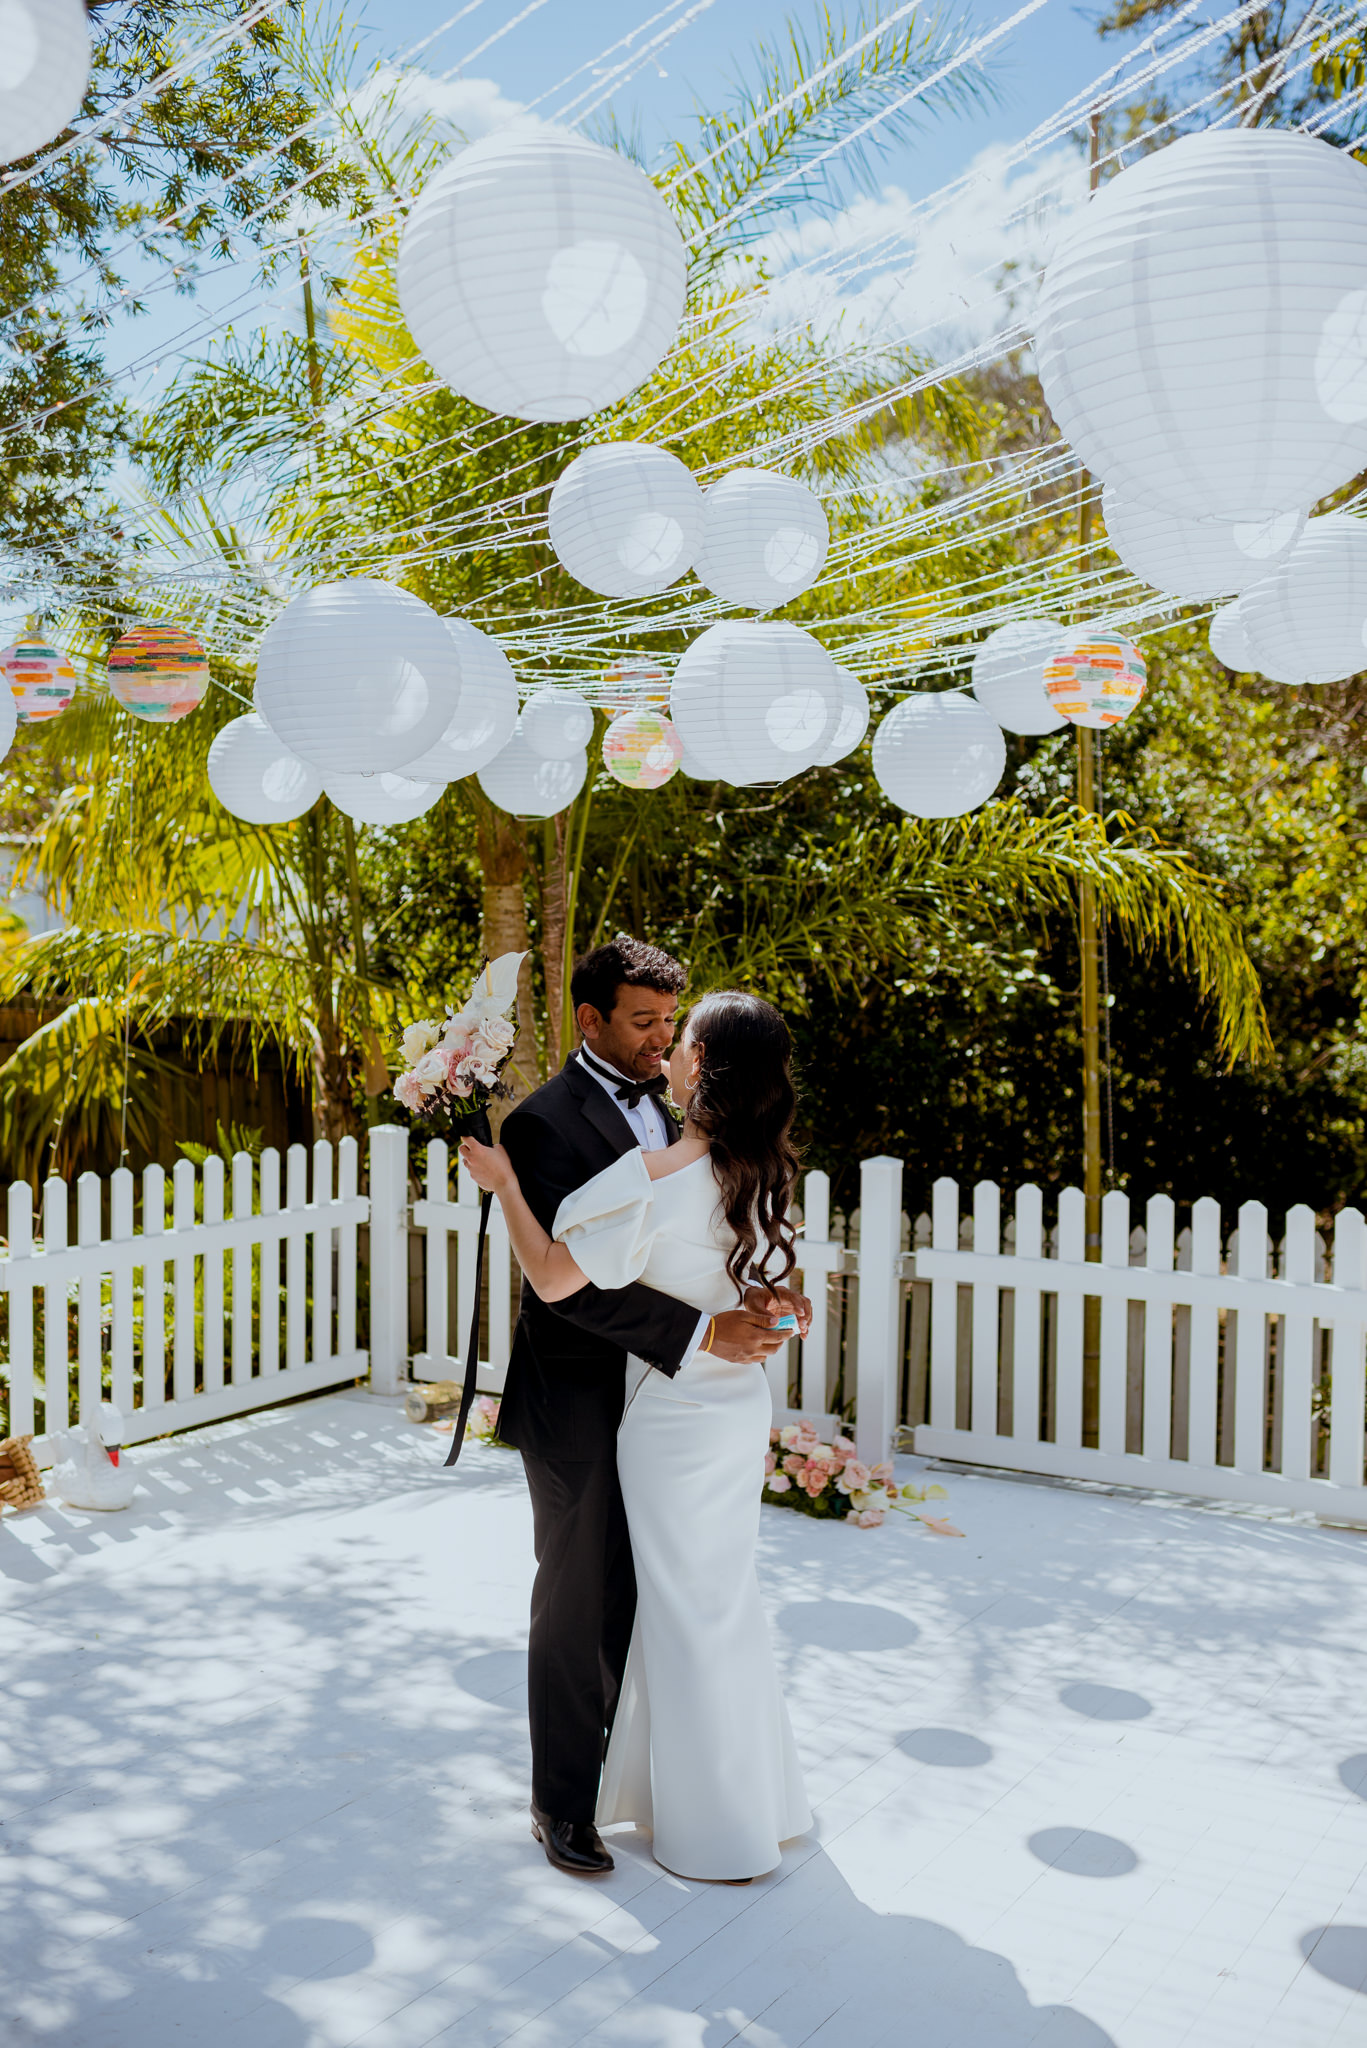 Groom and bride holding each other under white lanterns on a white wooden stage